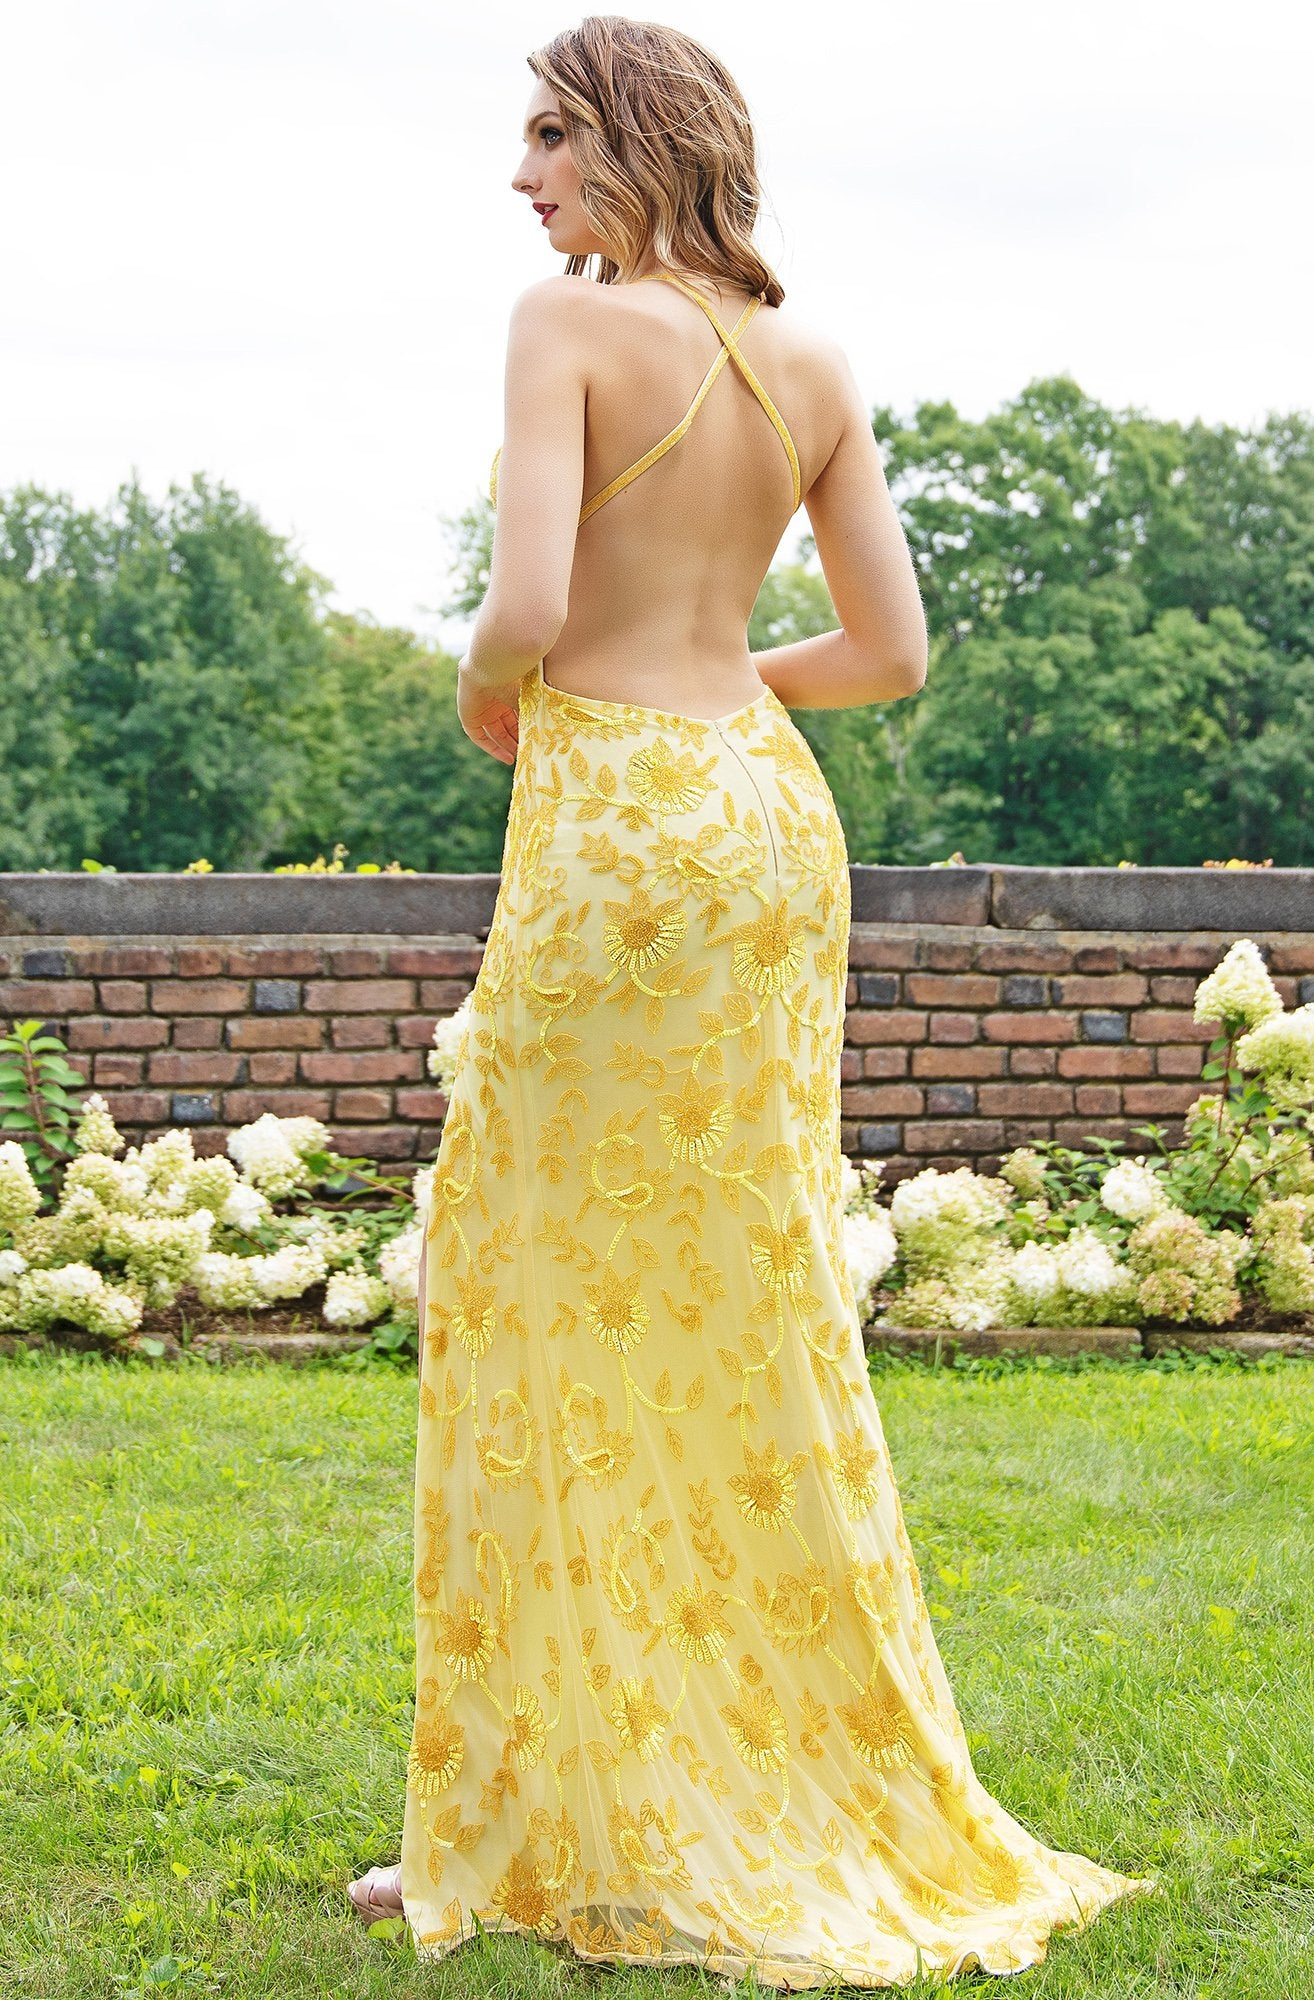 Primavera Couture - 3259 Stylistic Floral Beaded High Slit Gown In Yellow